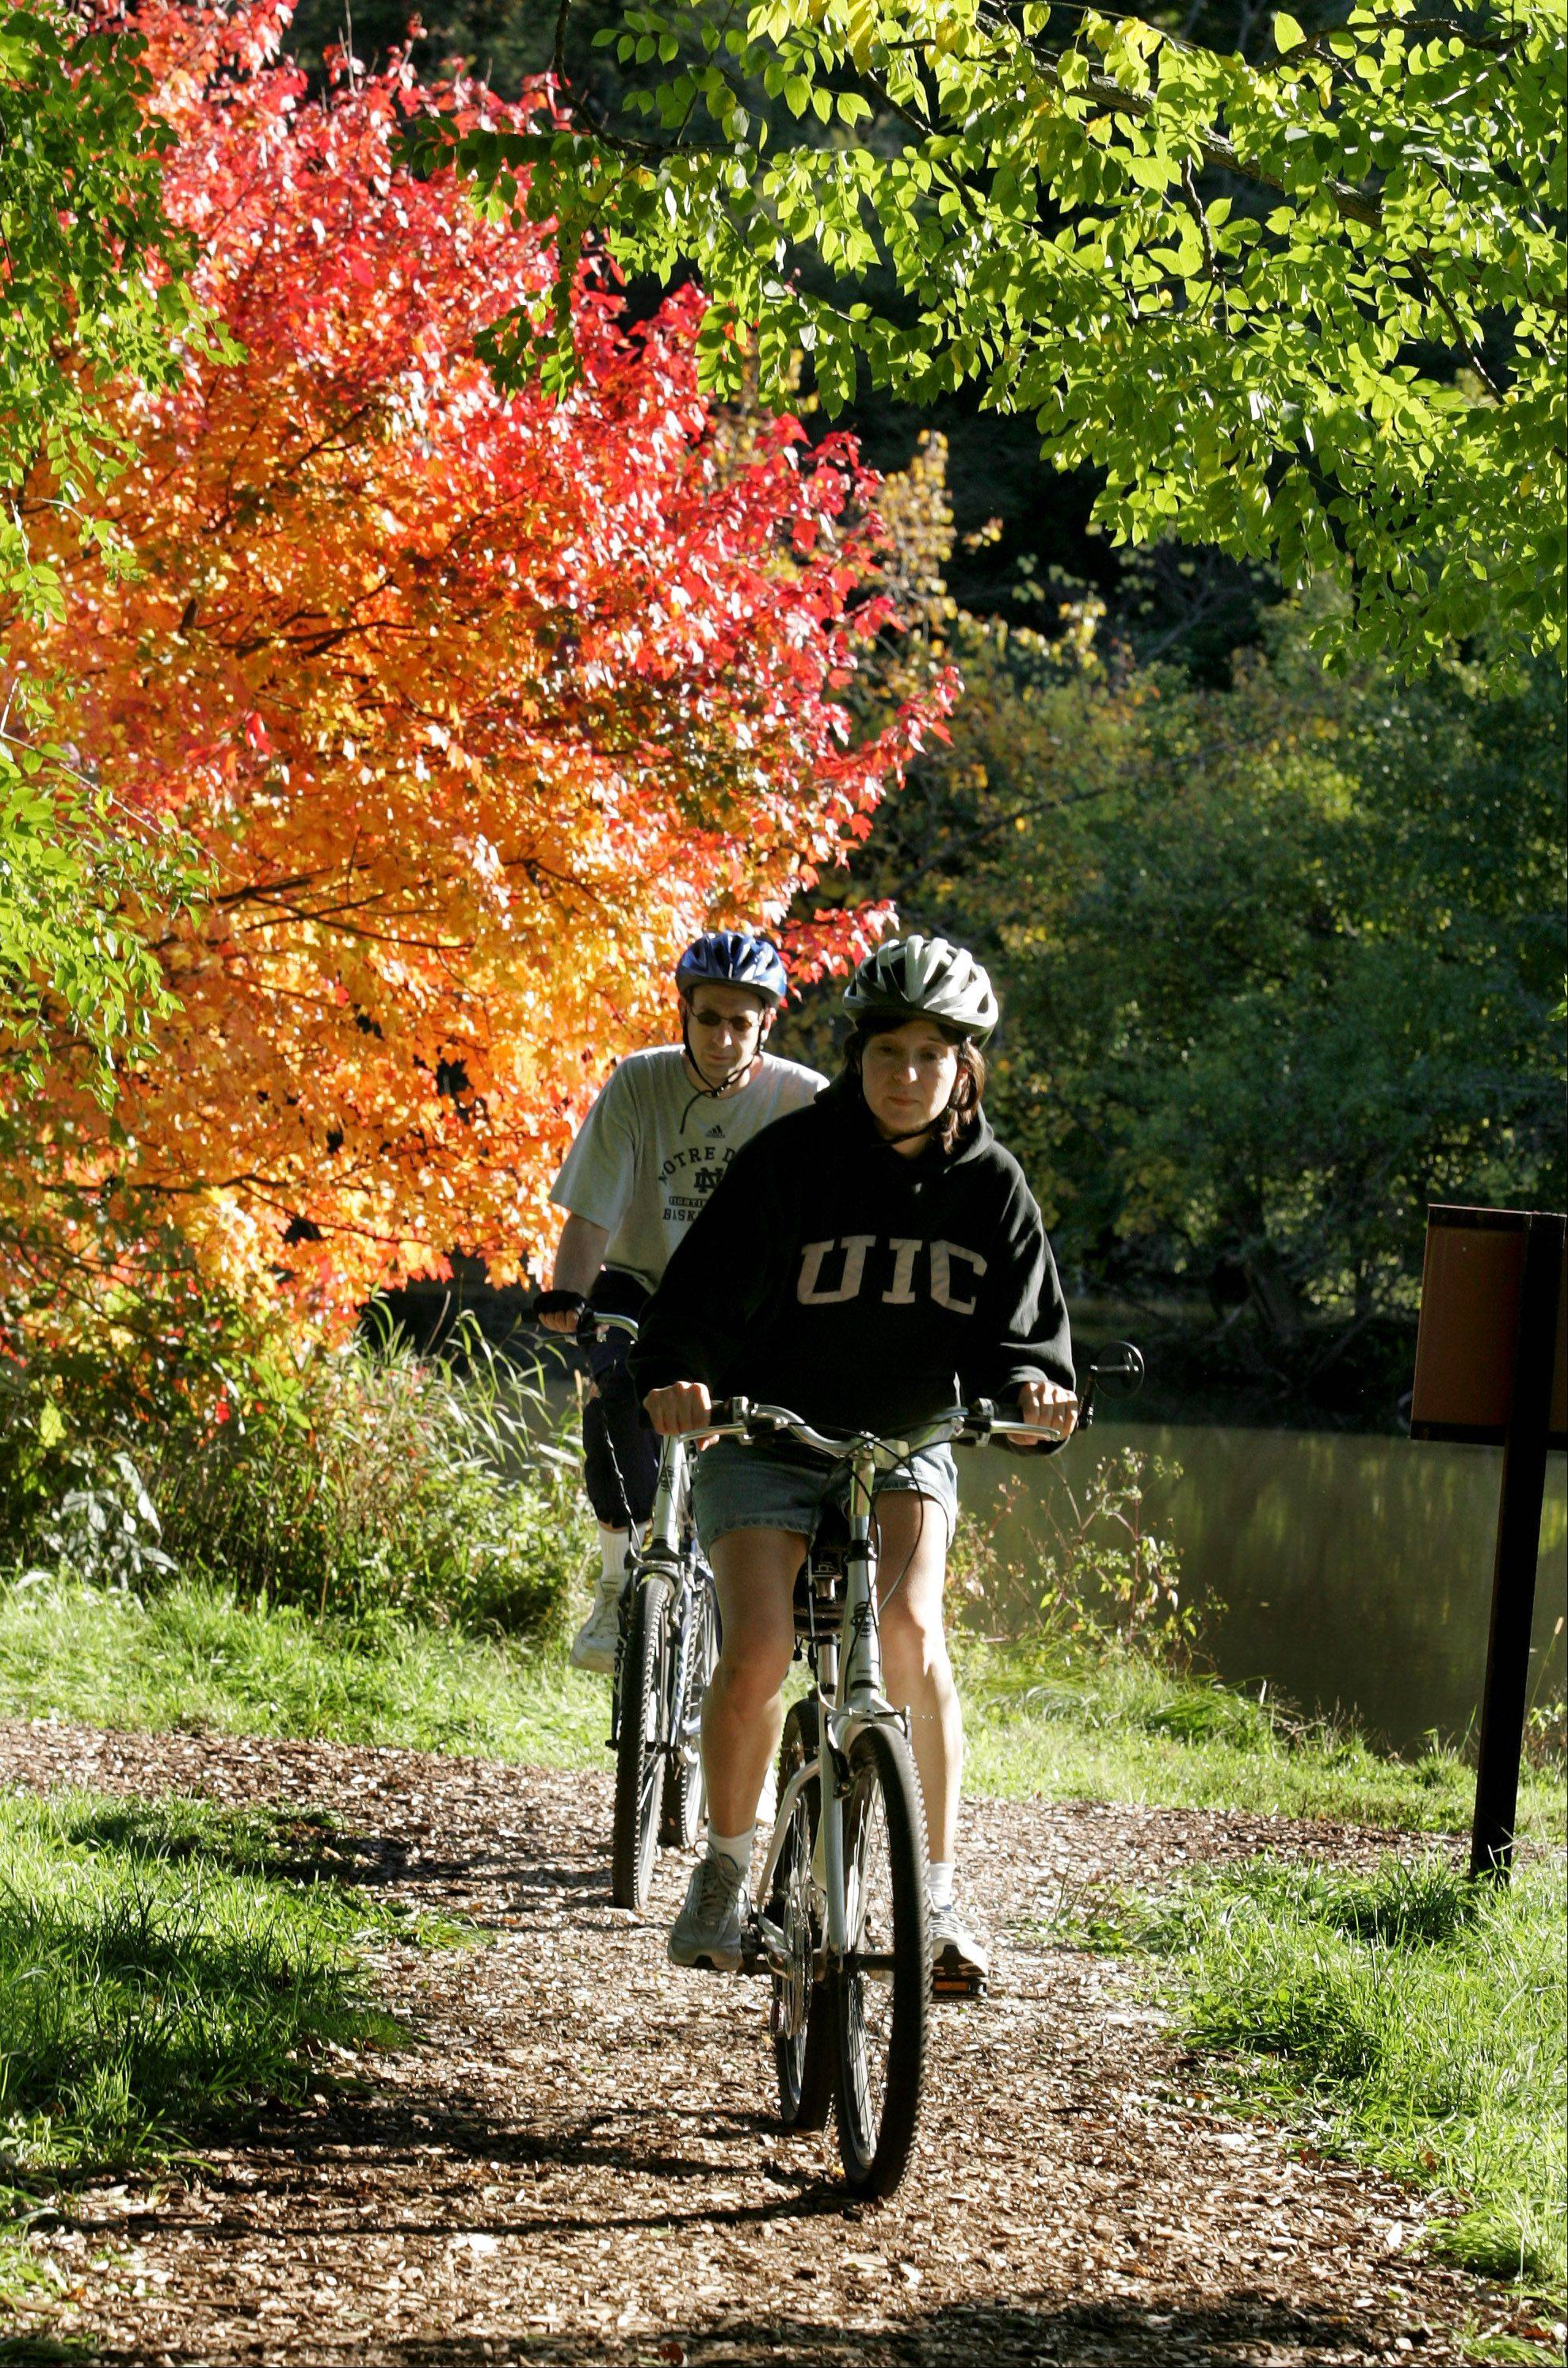 Biking at the Arboretum has gotten easier since official there decided to open up the 14 miles of trails to just bicyclists and pedestrians on Friday evenings and Saturday and Sunday mornings.